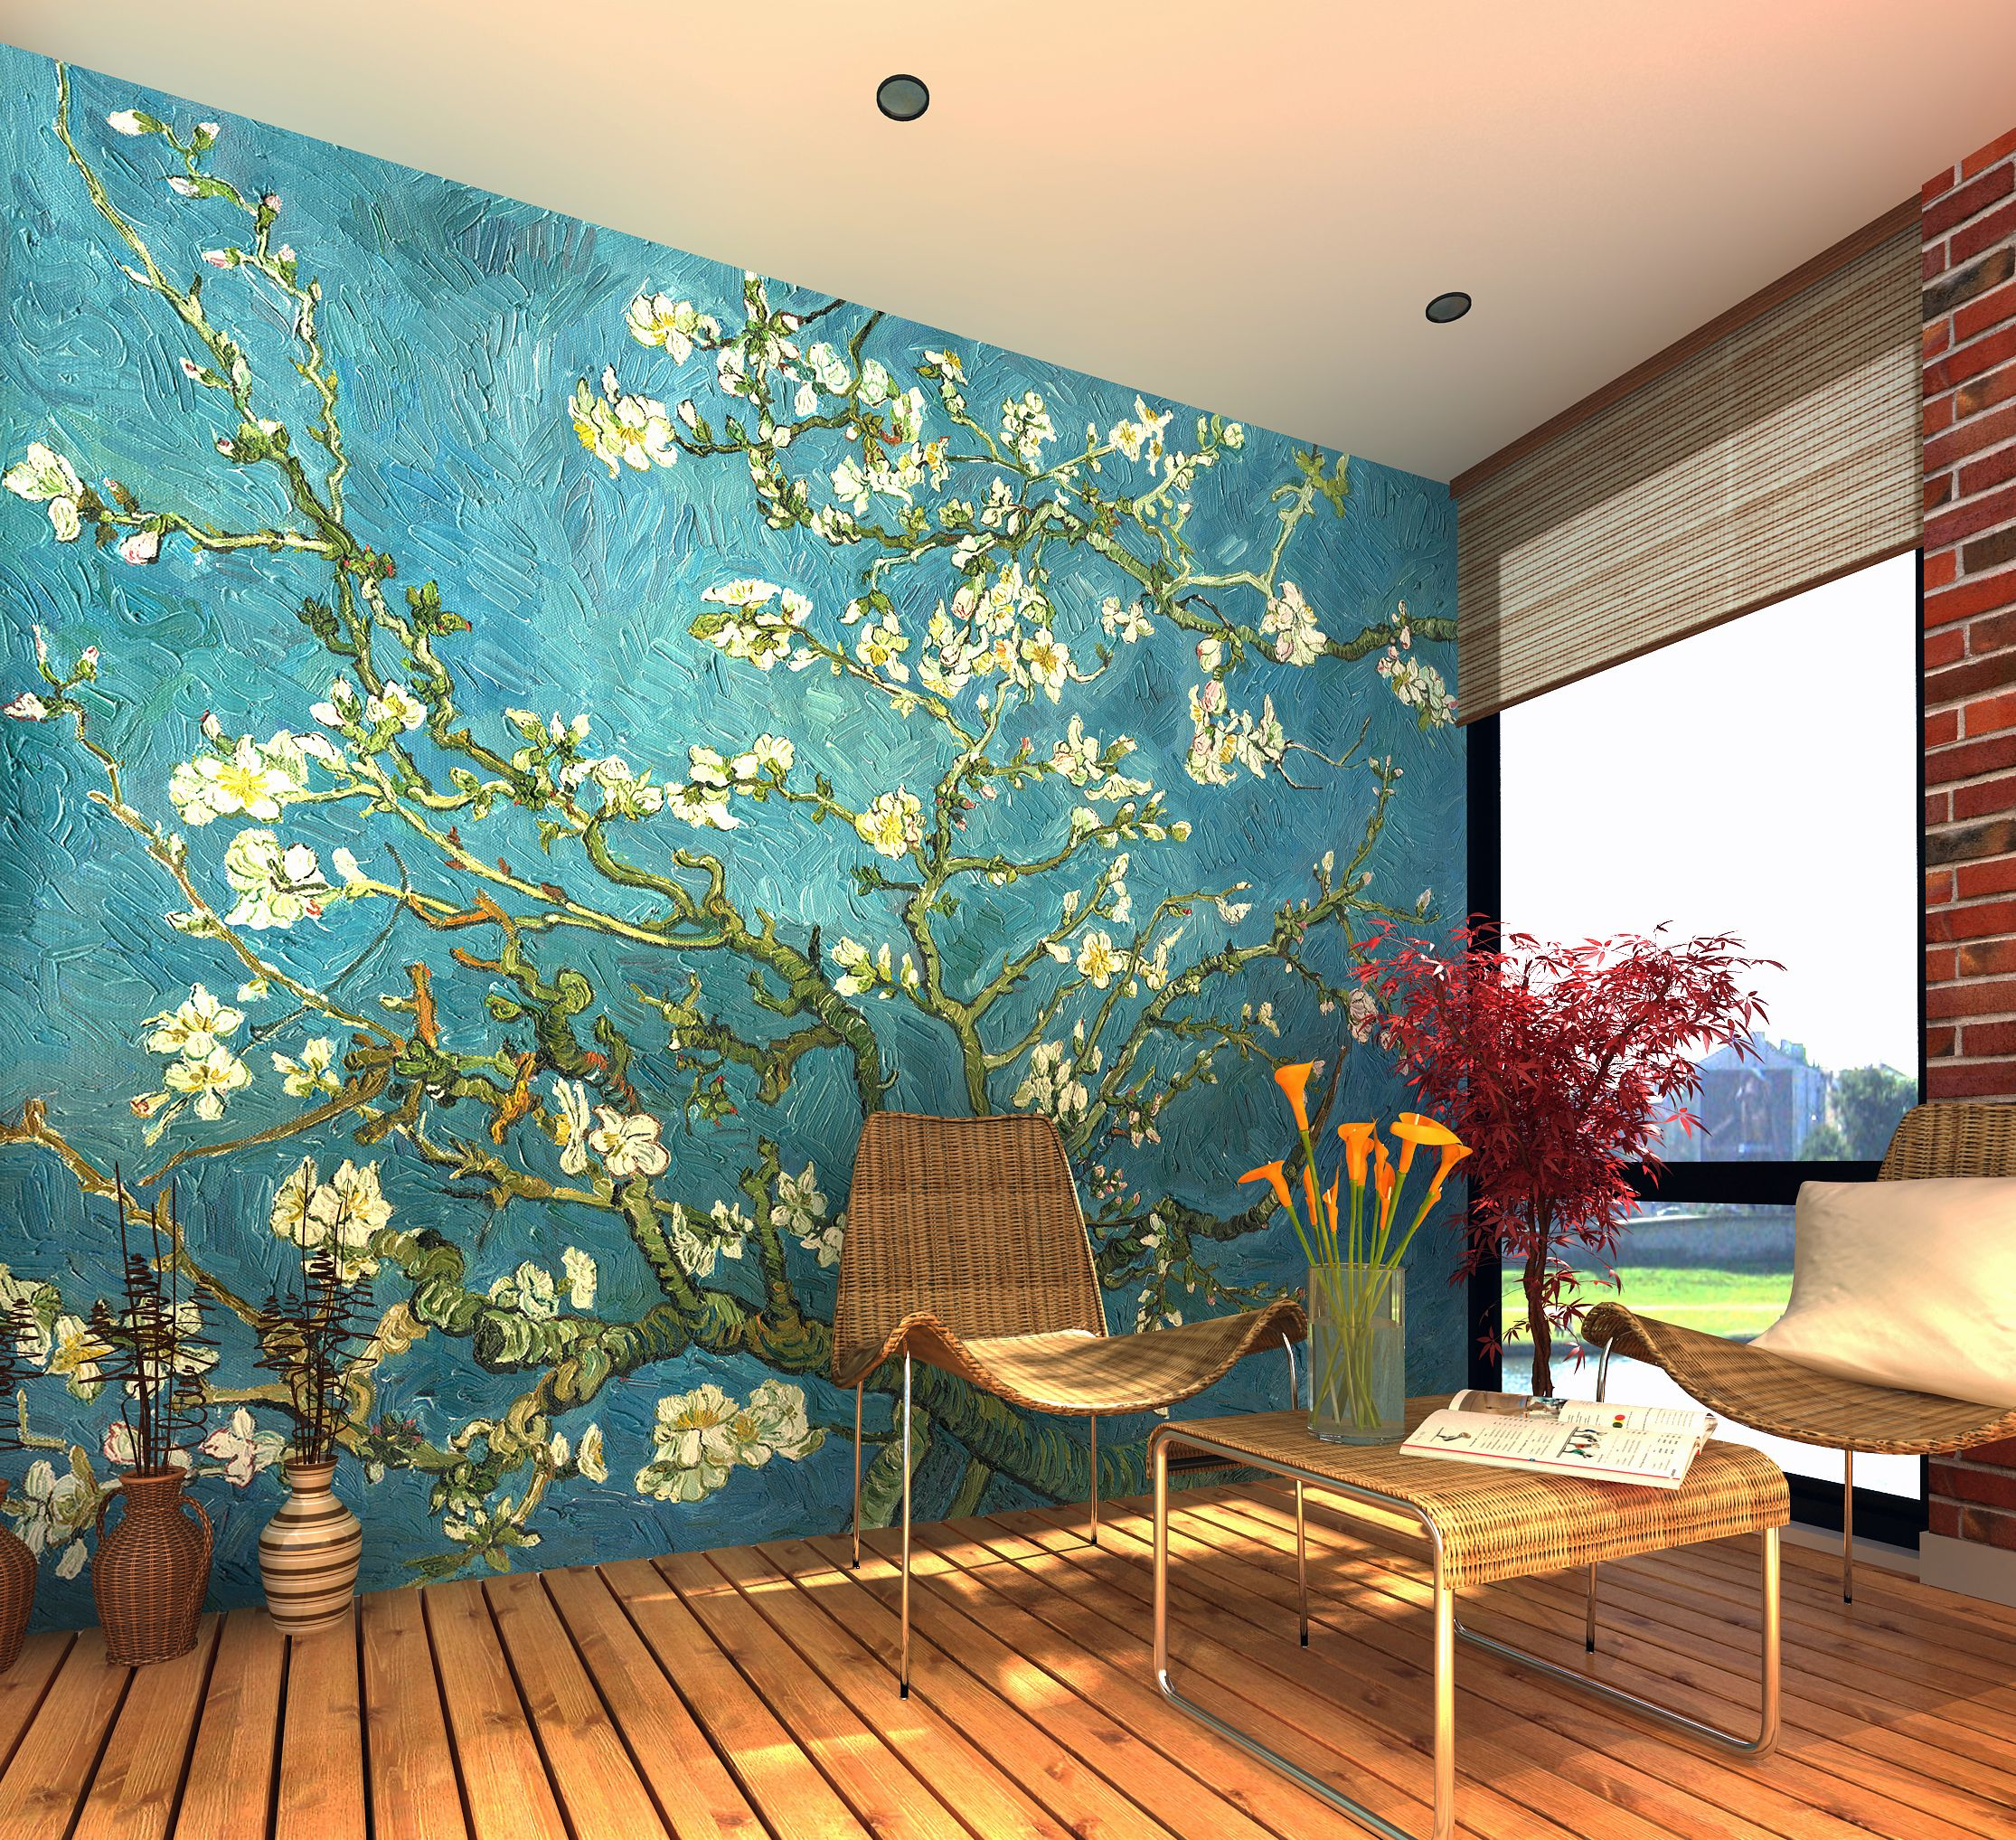 Van gogh almond blossom wall mural wallpaper for Wallpaper home wall